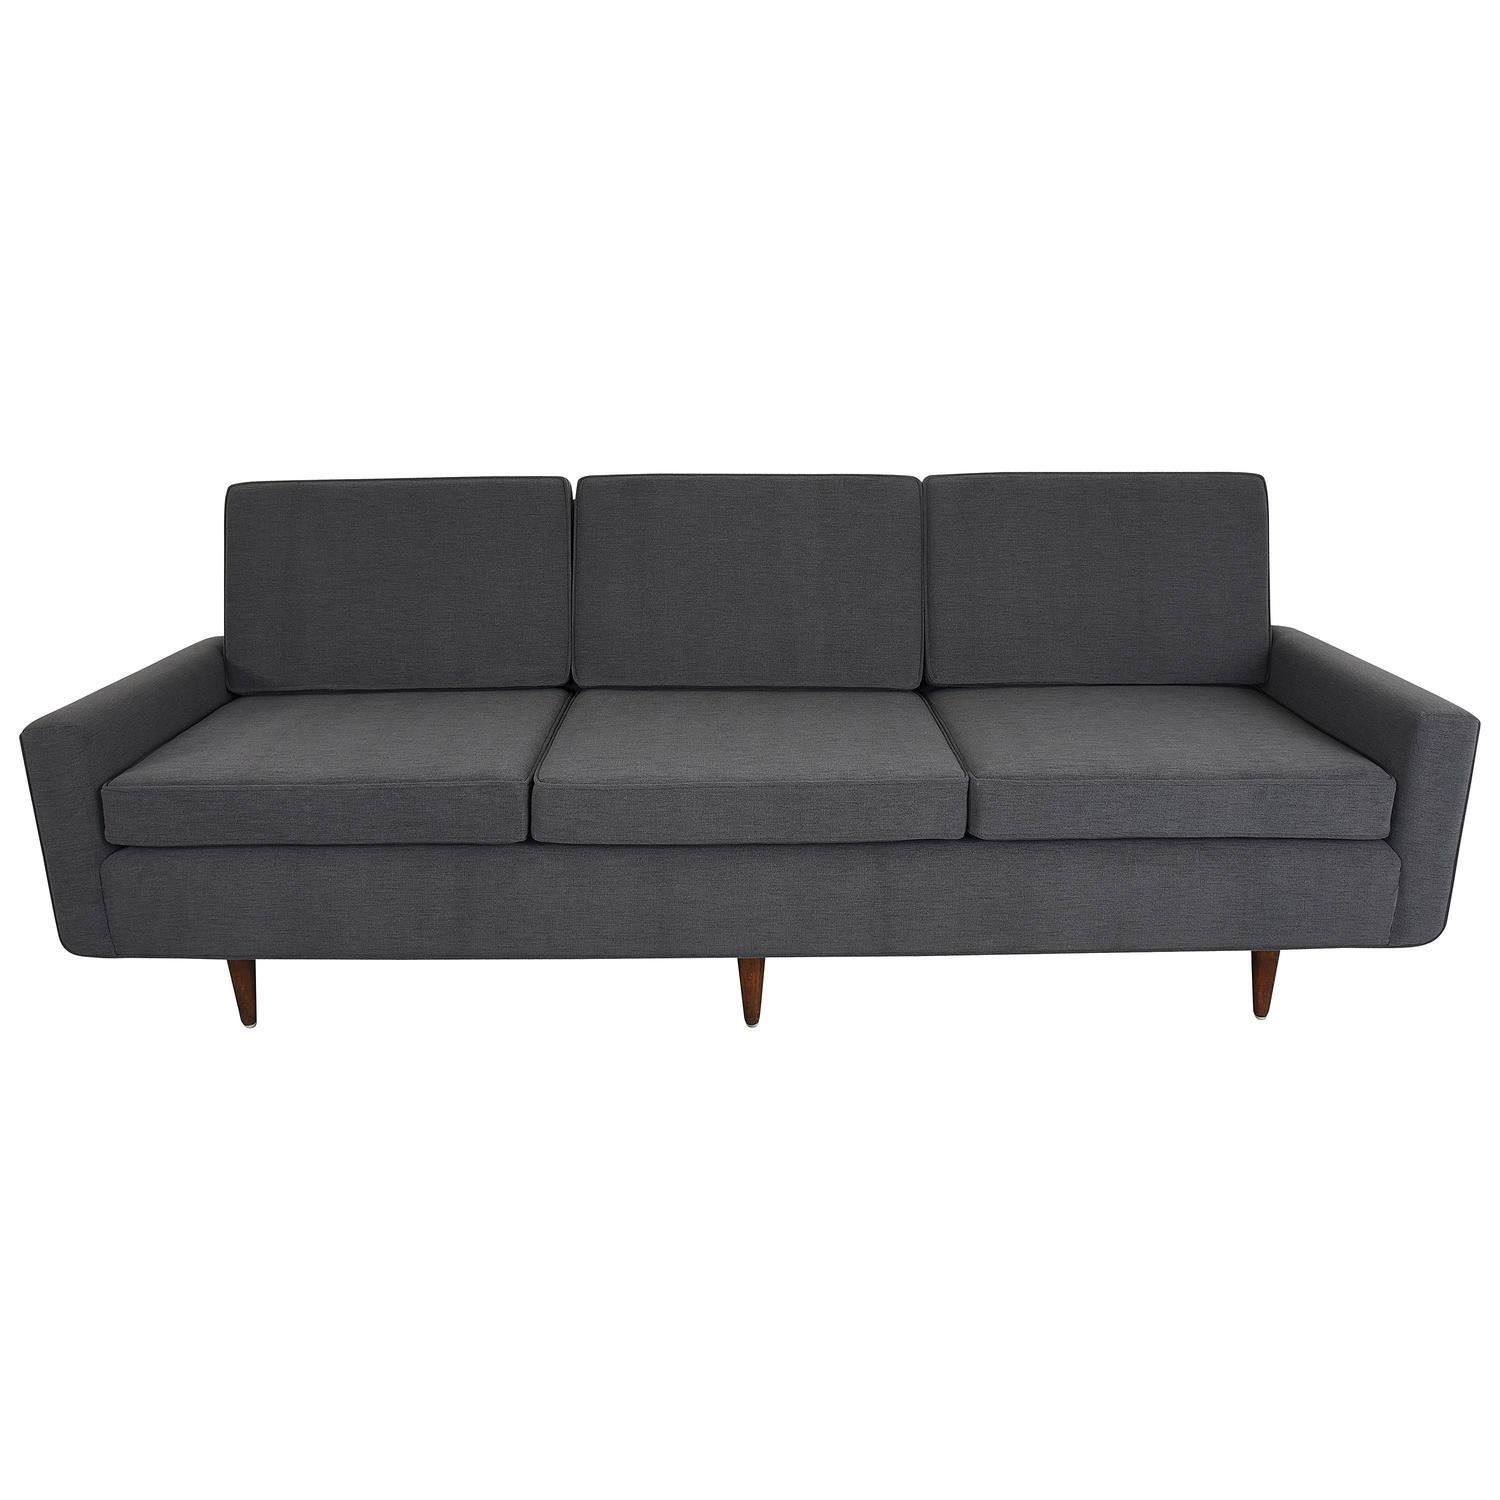 best florence knoll sofa reproduction marshmallow furniture flip open mickey mouse clubhouse 20 ideas leather sofas